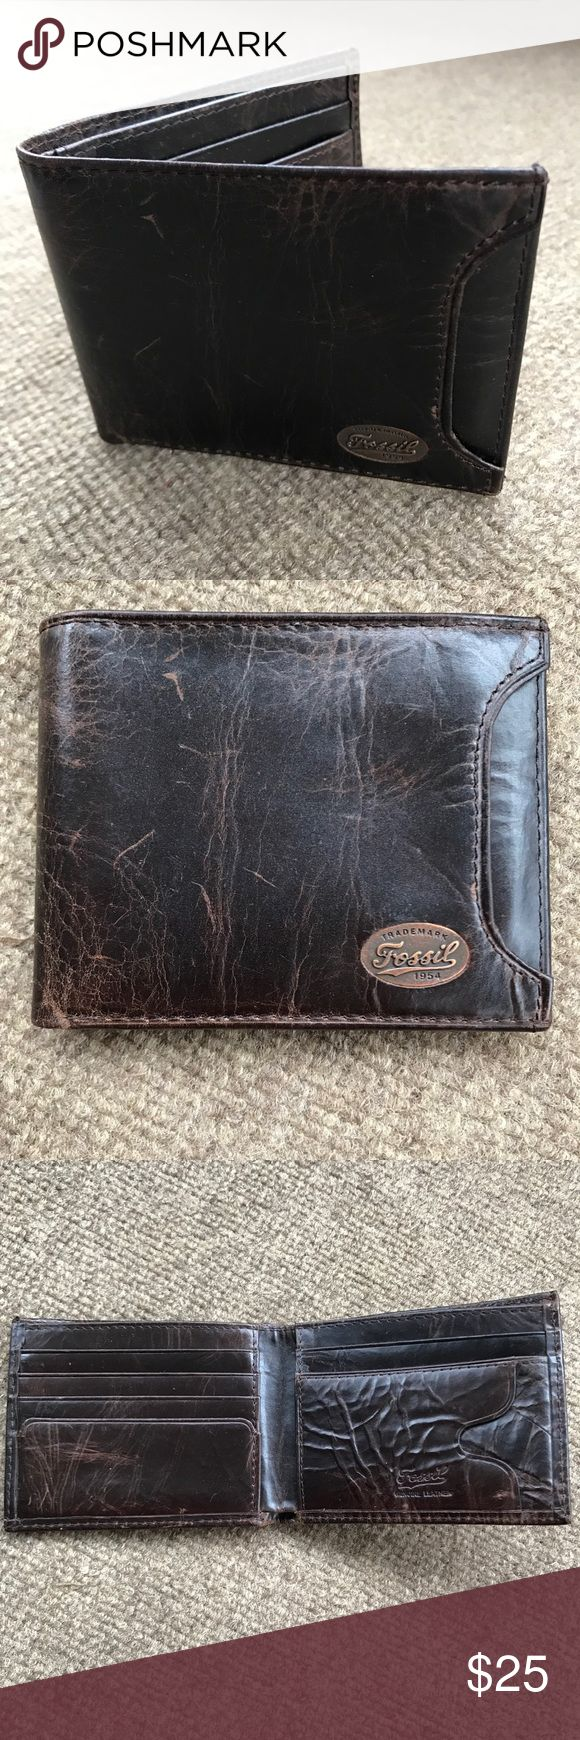 "Men's FOSSIL Wallet Bifold style brown textured wallet. 6 card slots & bill slot inside and pocket on front for ID slider which is NOT included (my hub bought this solely for the slider). Shows very minor signs of use.  4.5"" across by 3.5"" tall when in closed position. Comes from smoke free, cat friendly home. Fossil Bags Wallets"